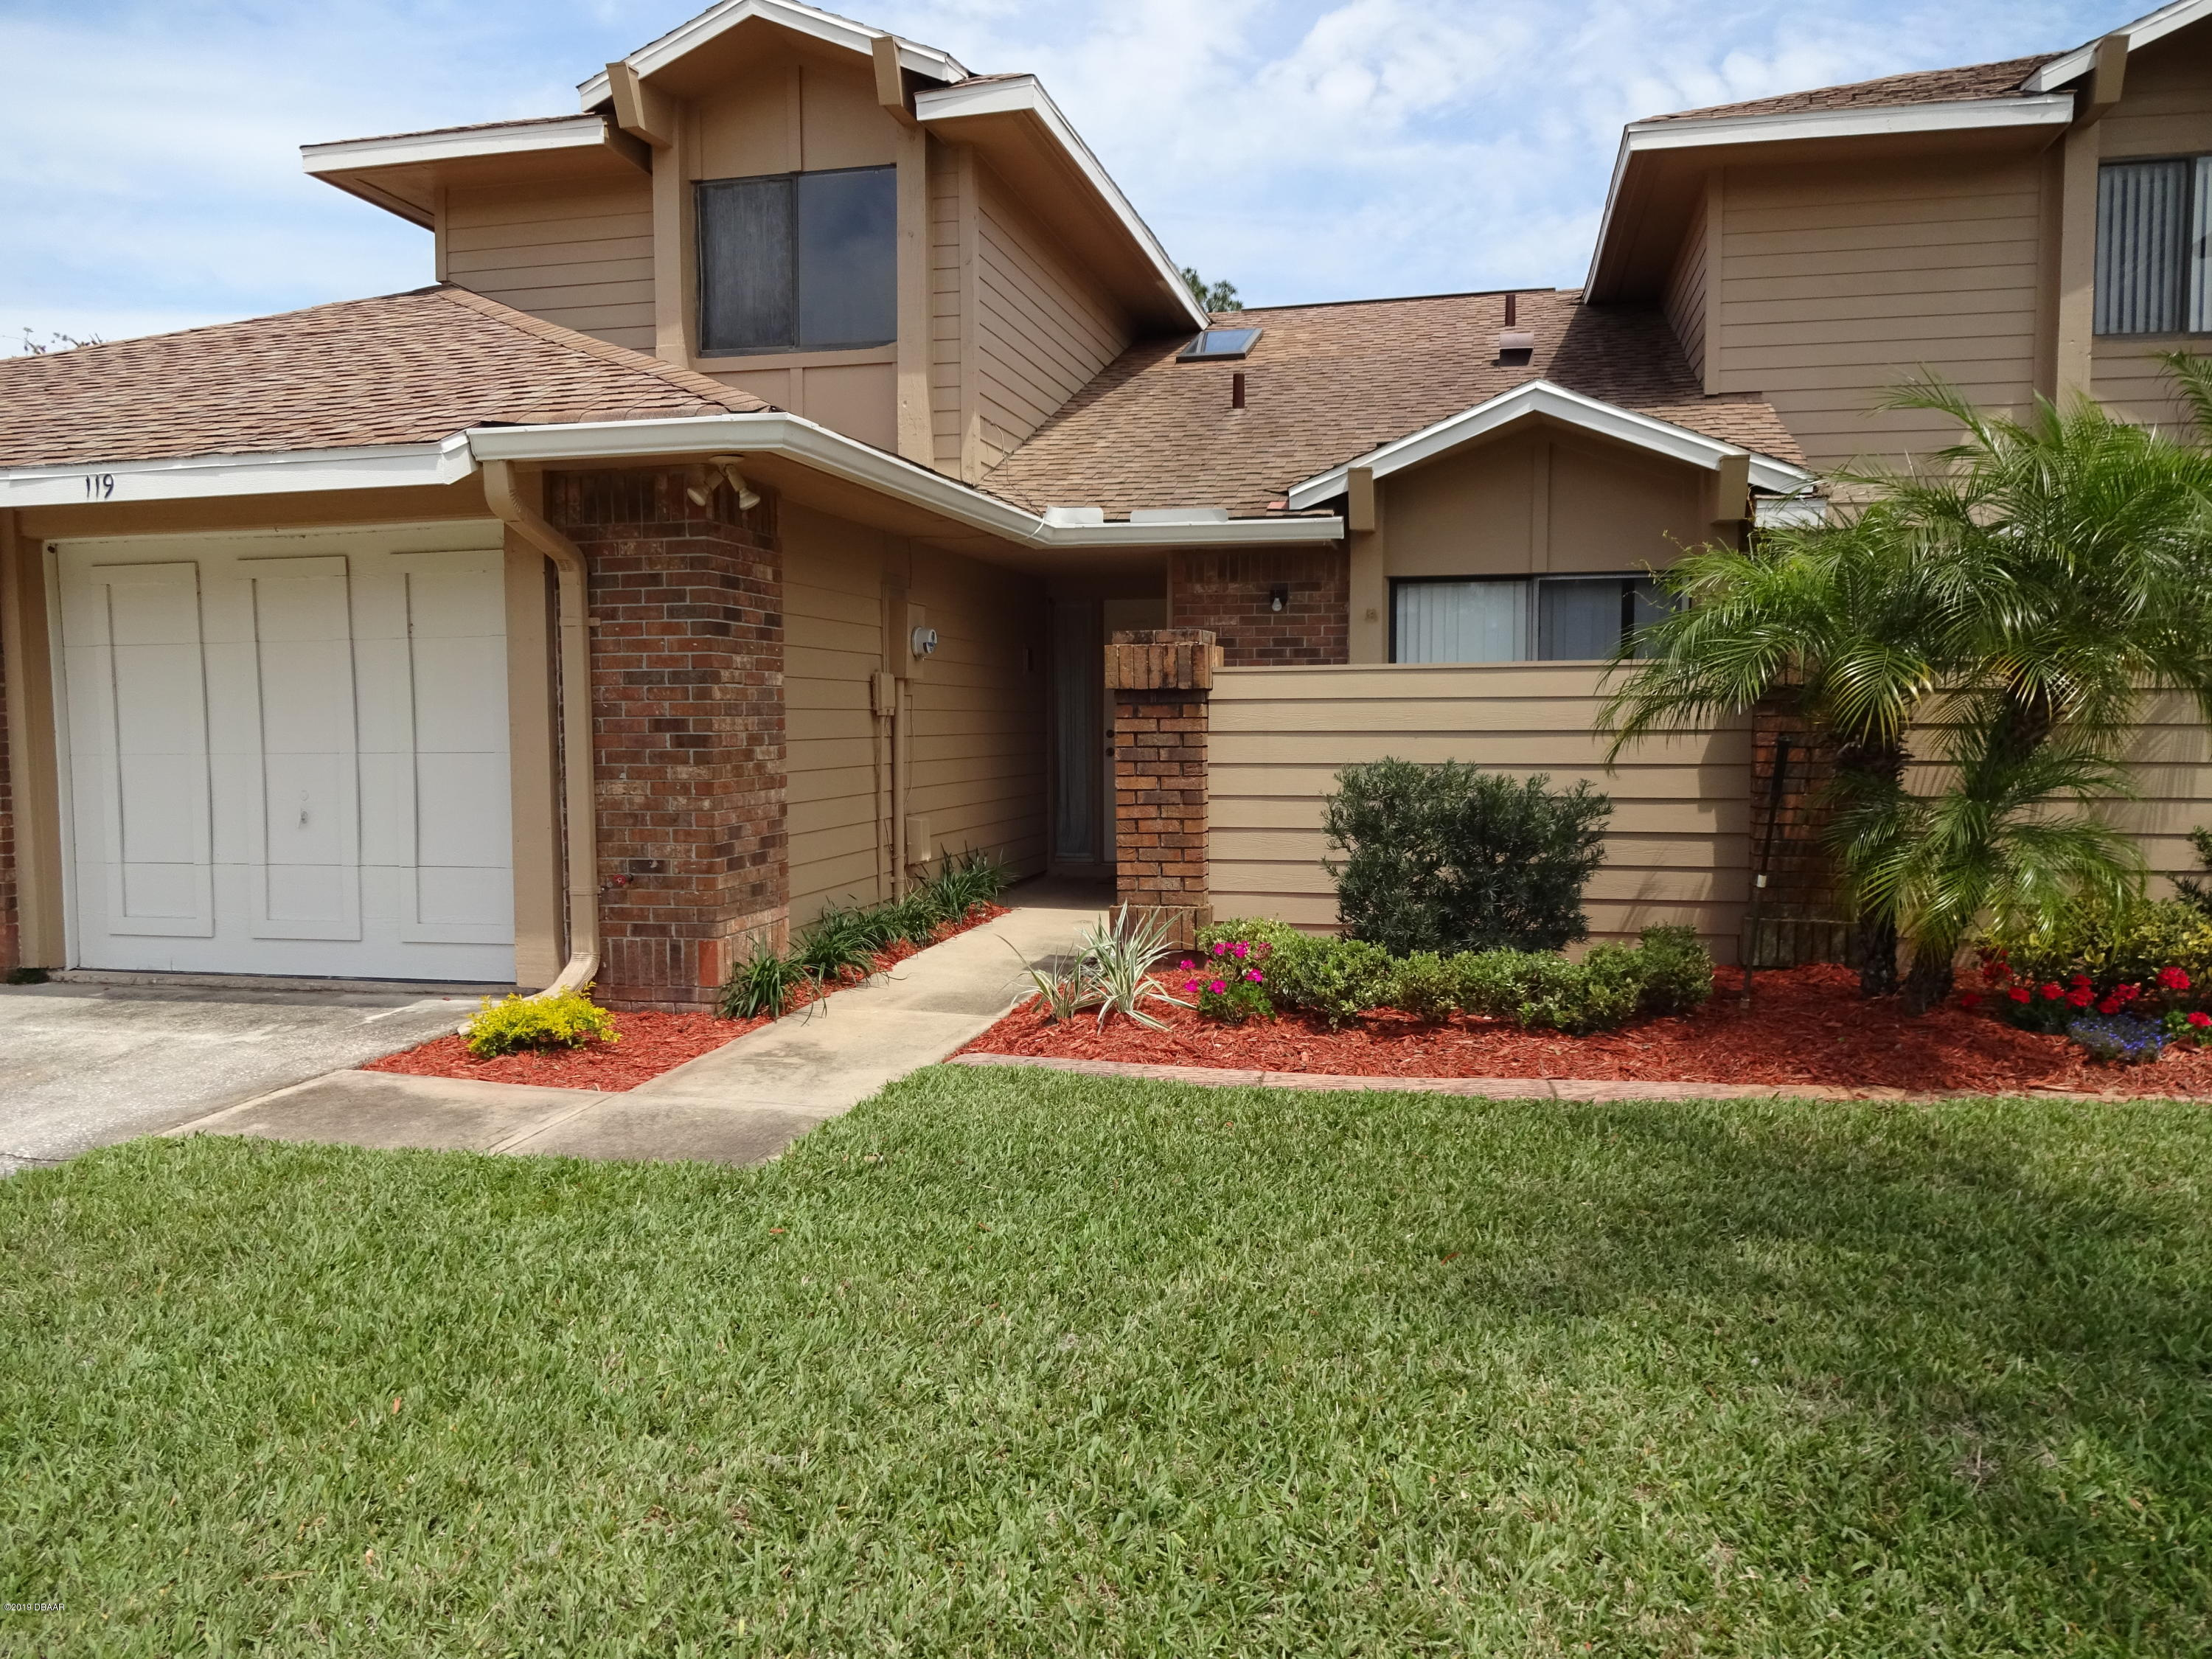 One of Daytona Beach 3 Bedroom Homes for Sale at 119  Surf Scooter Drive